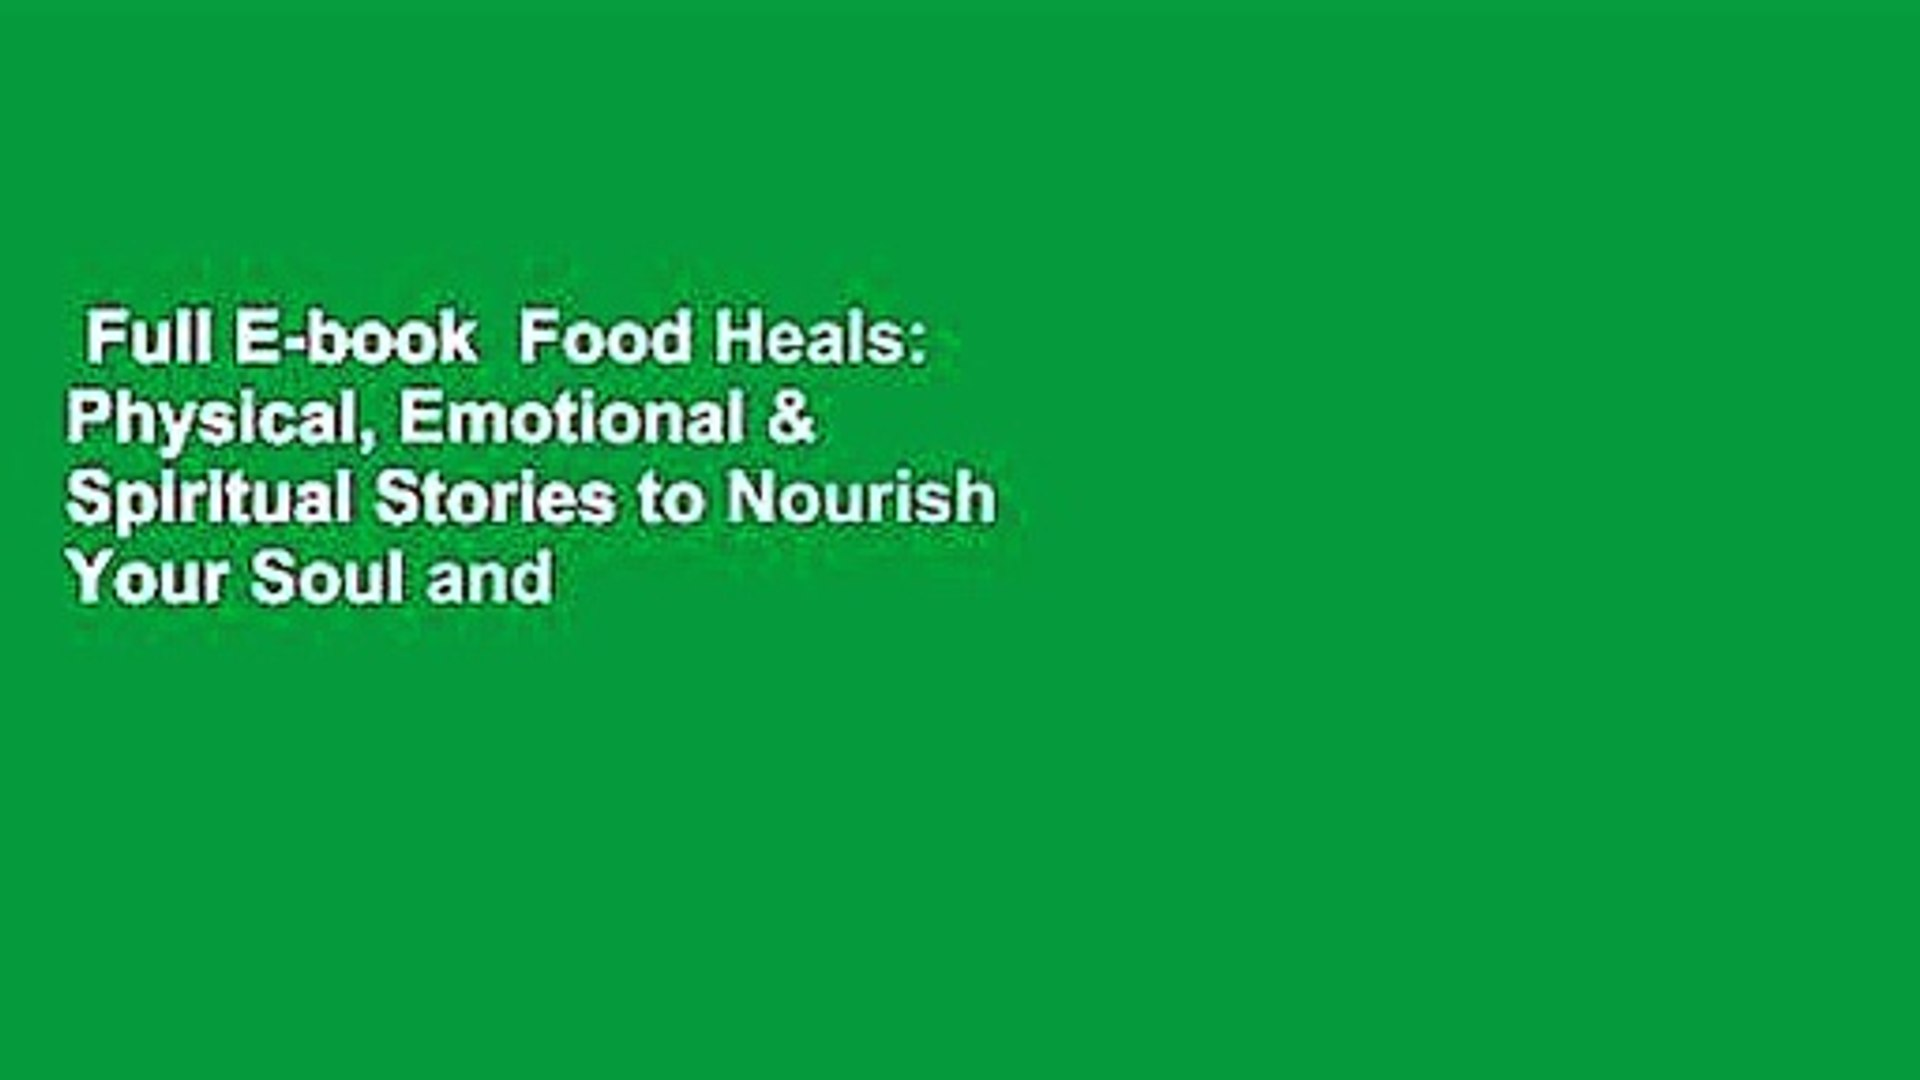 Full E-book  Food Heals: Physical, Emotional & Spiritual Stories to Nourish Your Soul and